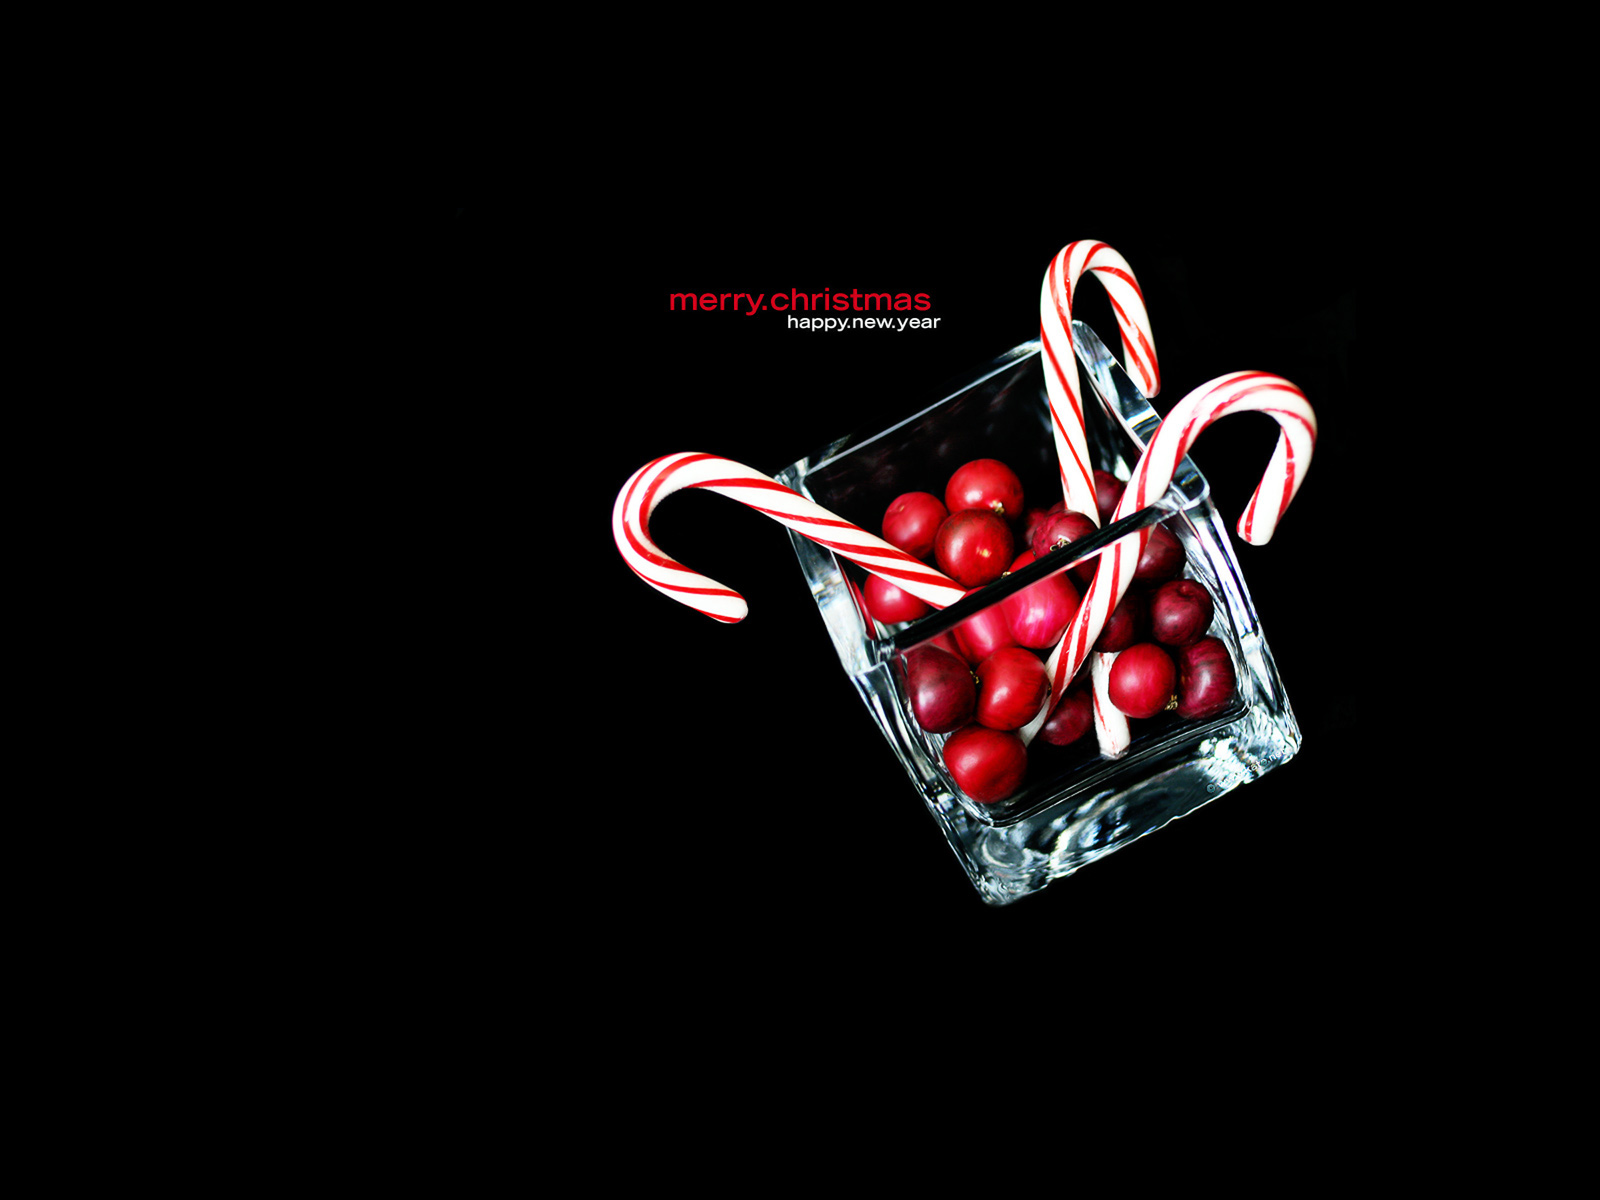 Christmas Candy Cane Wallpapers [HD] Wallpapers High 1600x1200